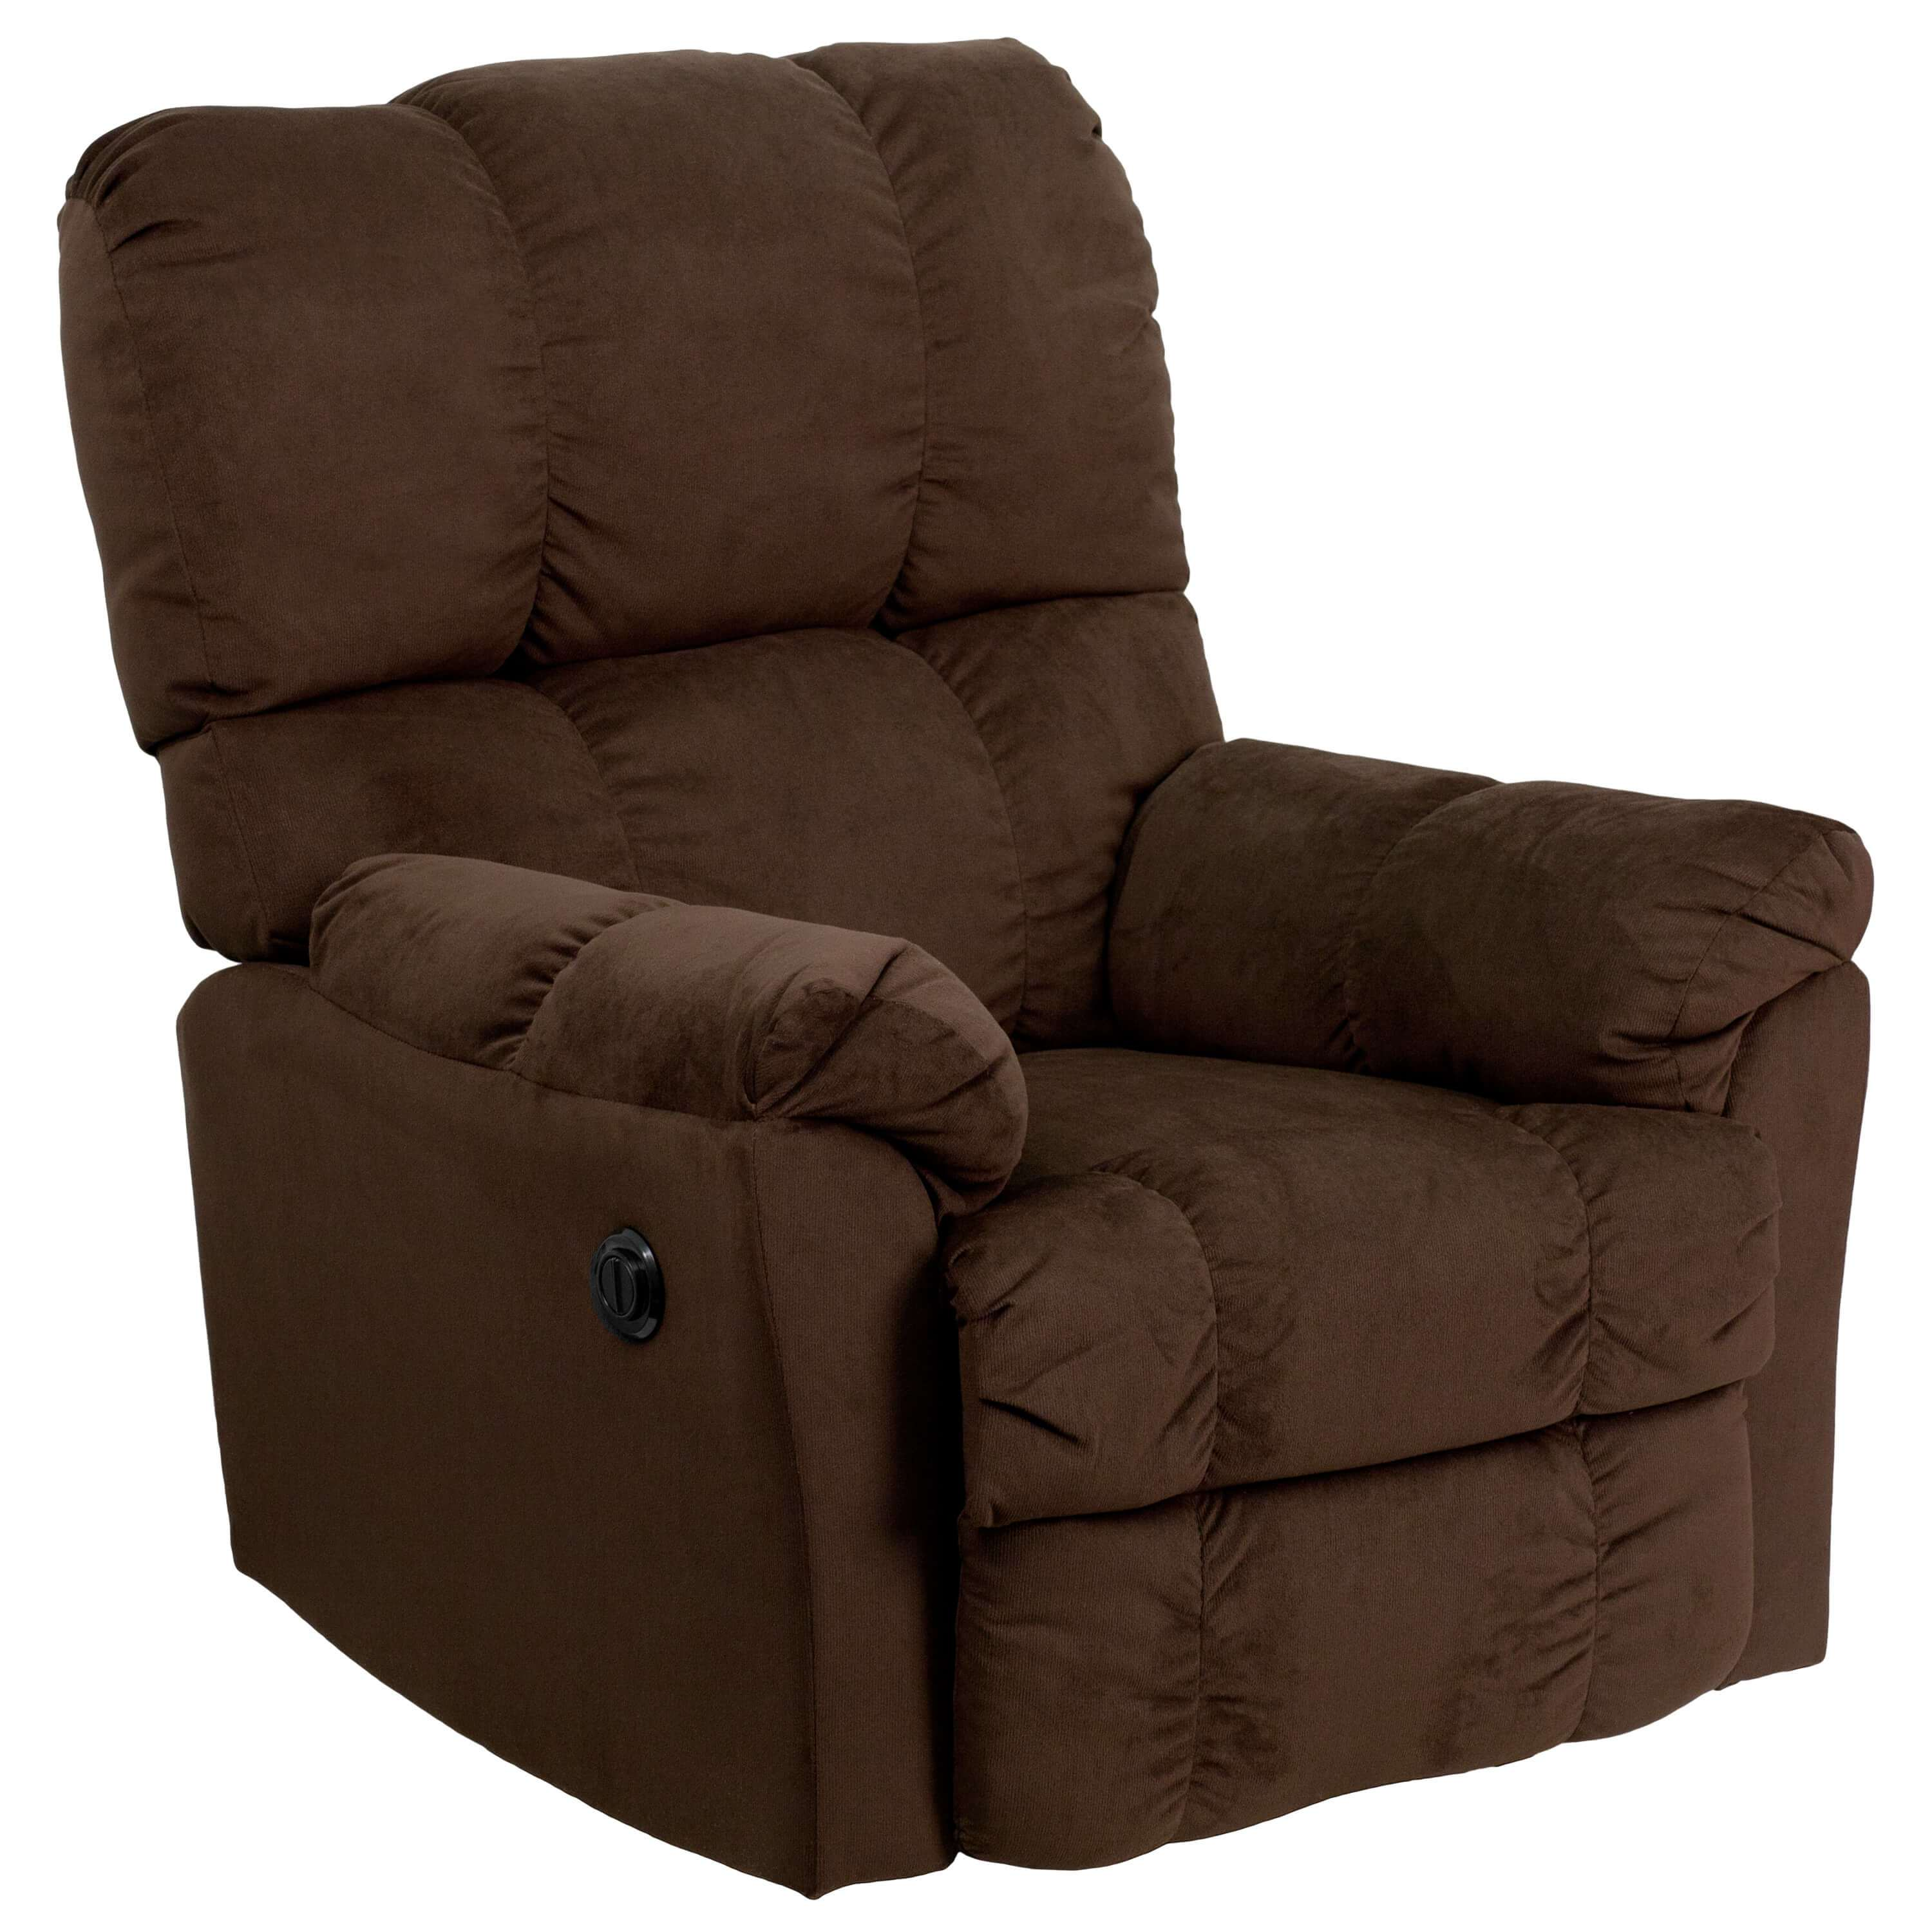 Modern recliner chair CUB AM P9320 4171 GG FLA 1